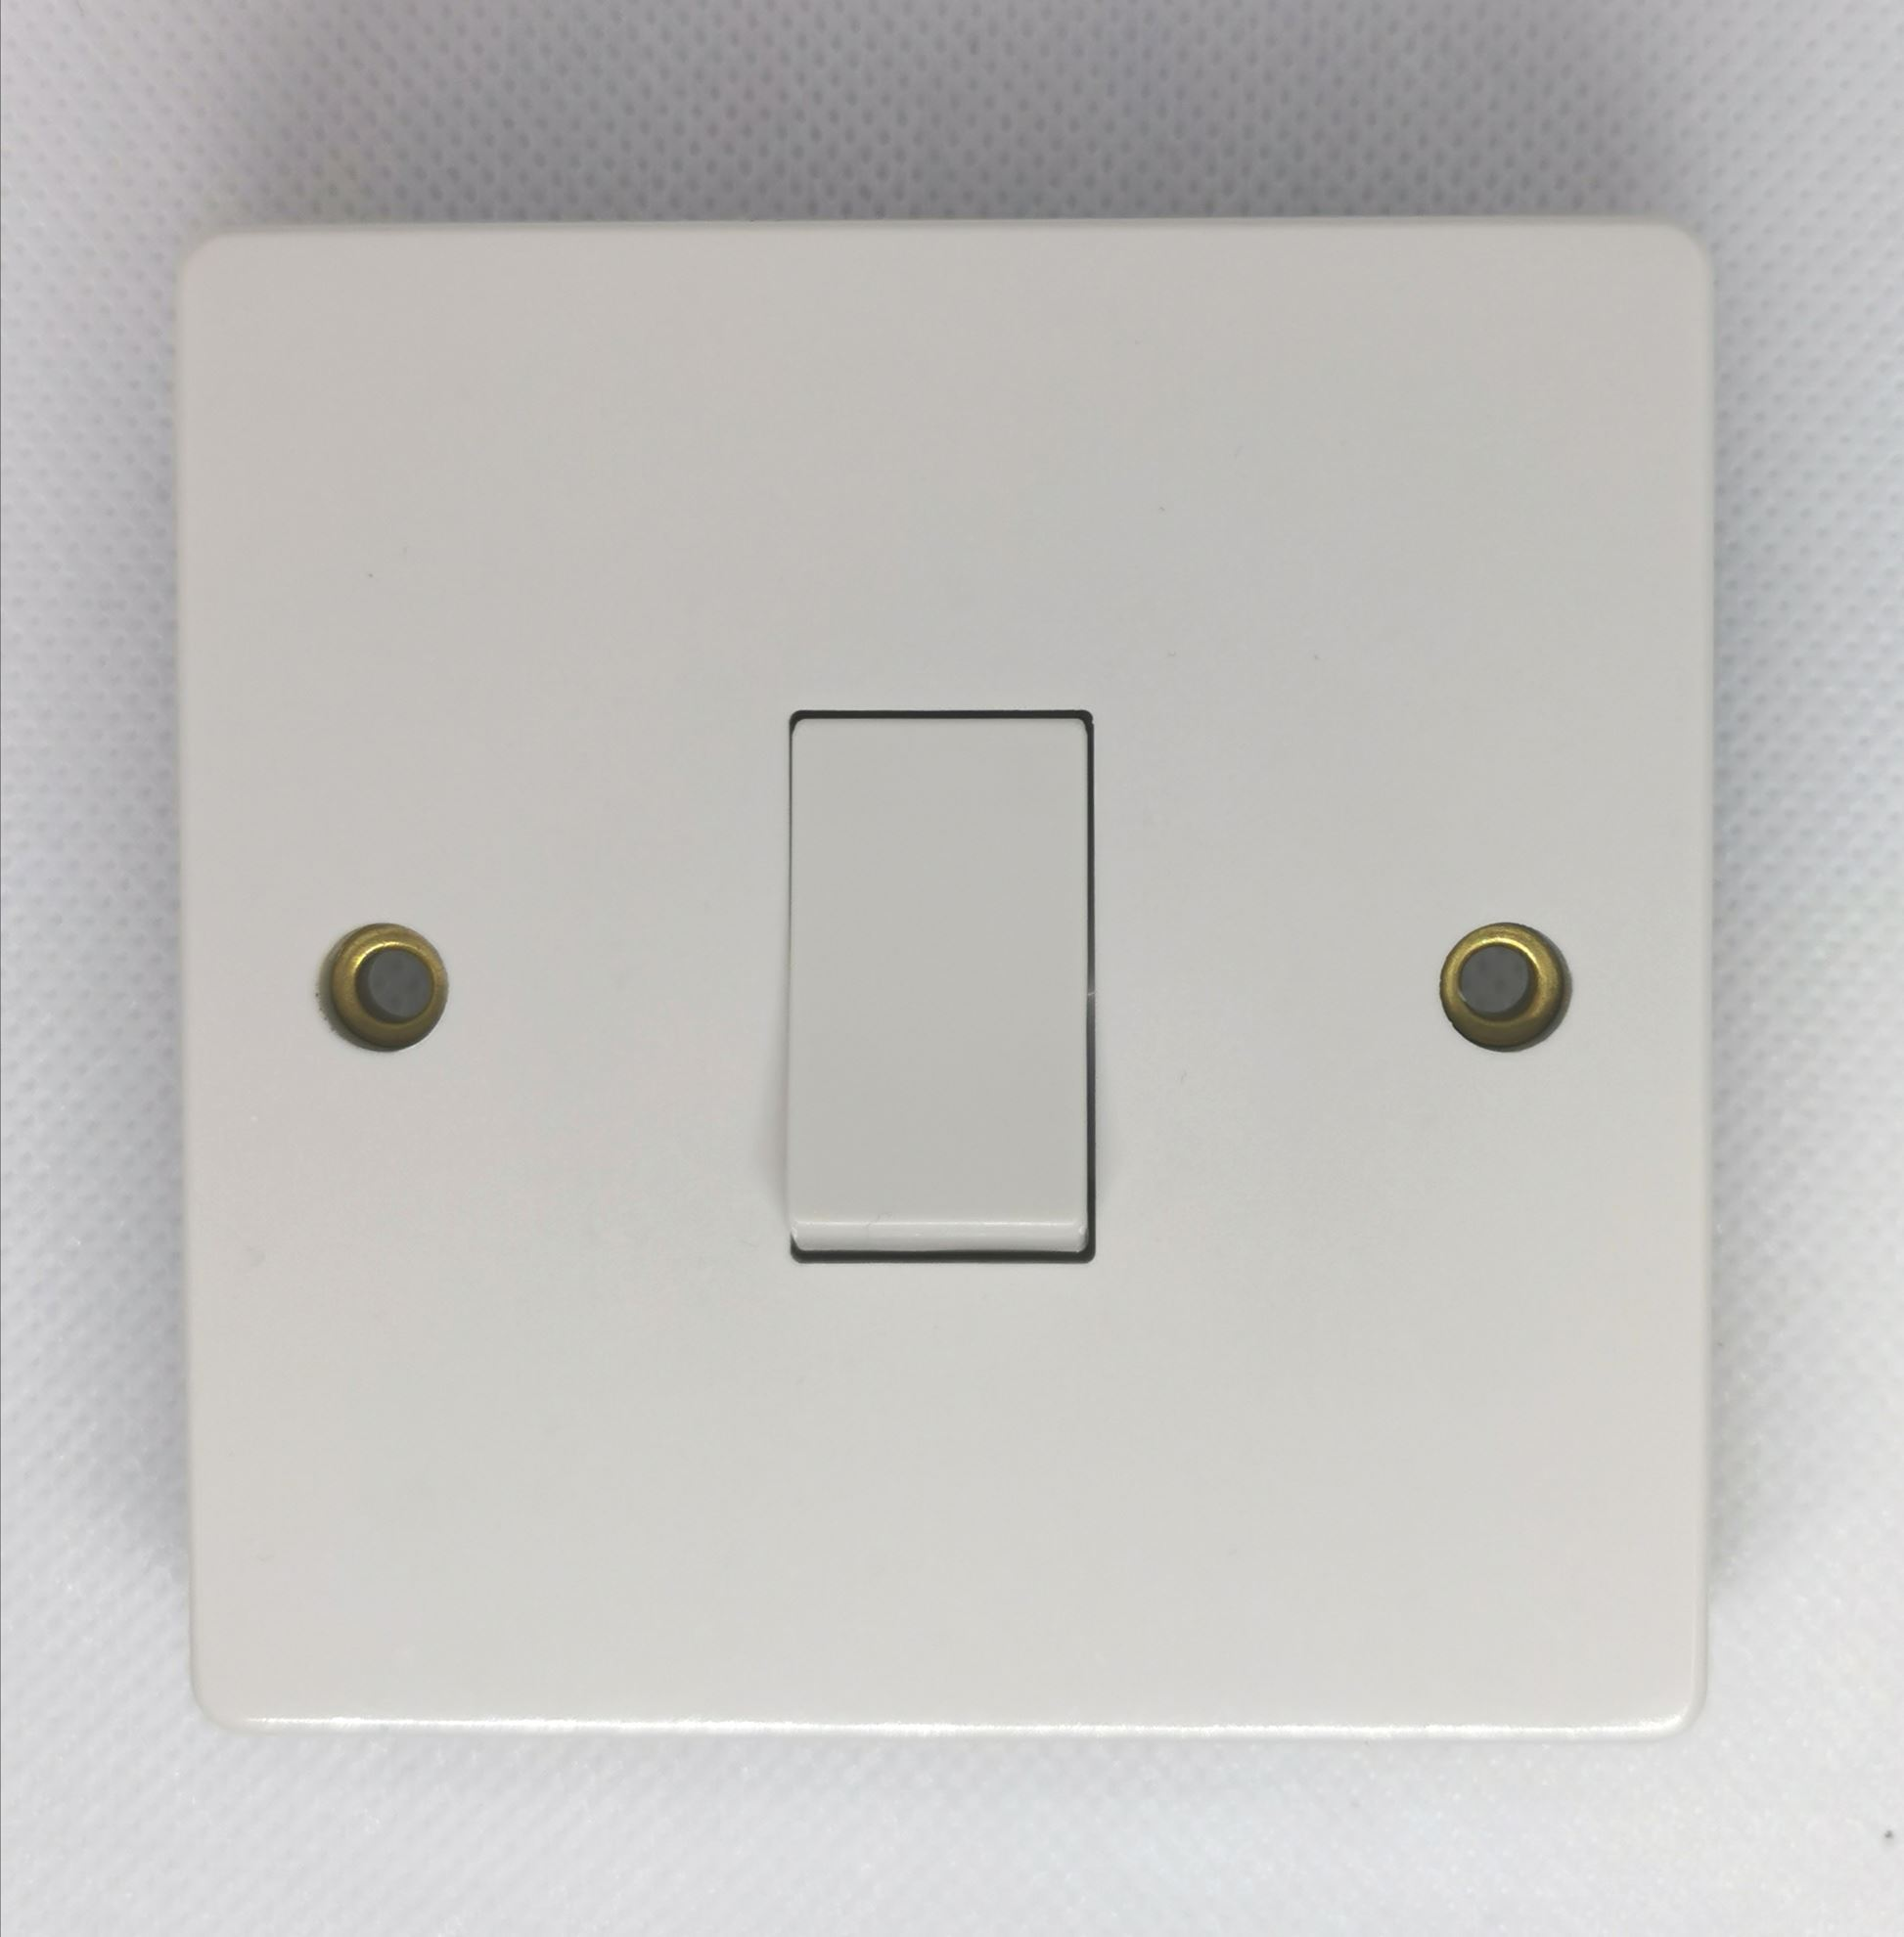 CRABTREE 7255-1 GANG UNSWITCHED SOCKET